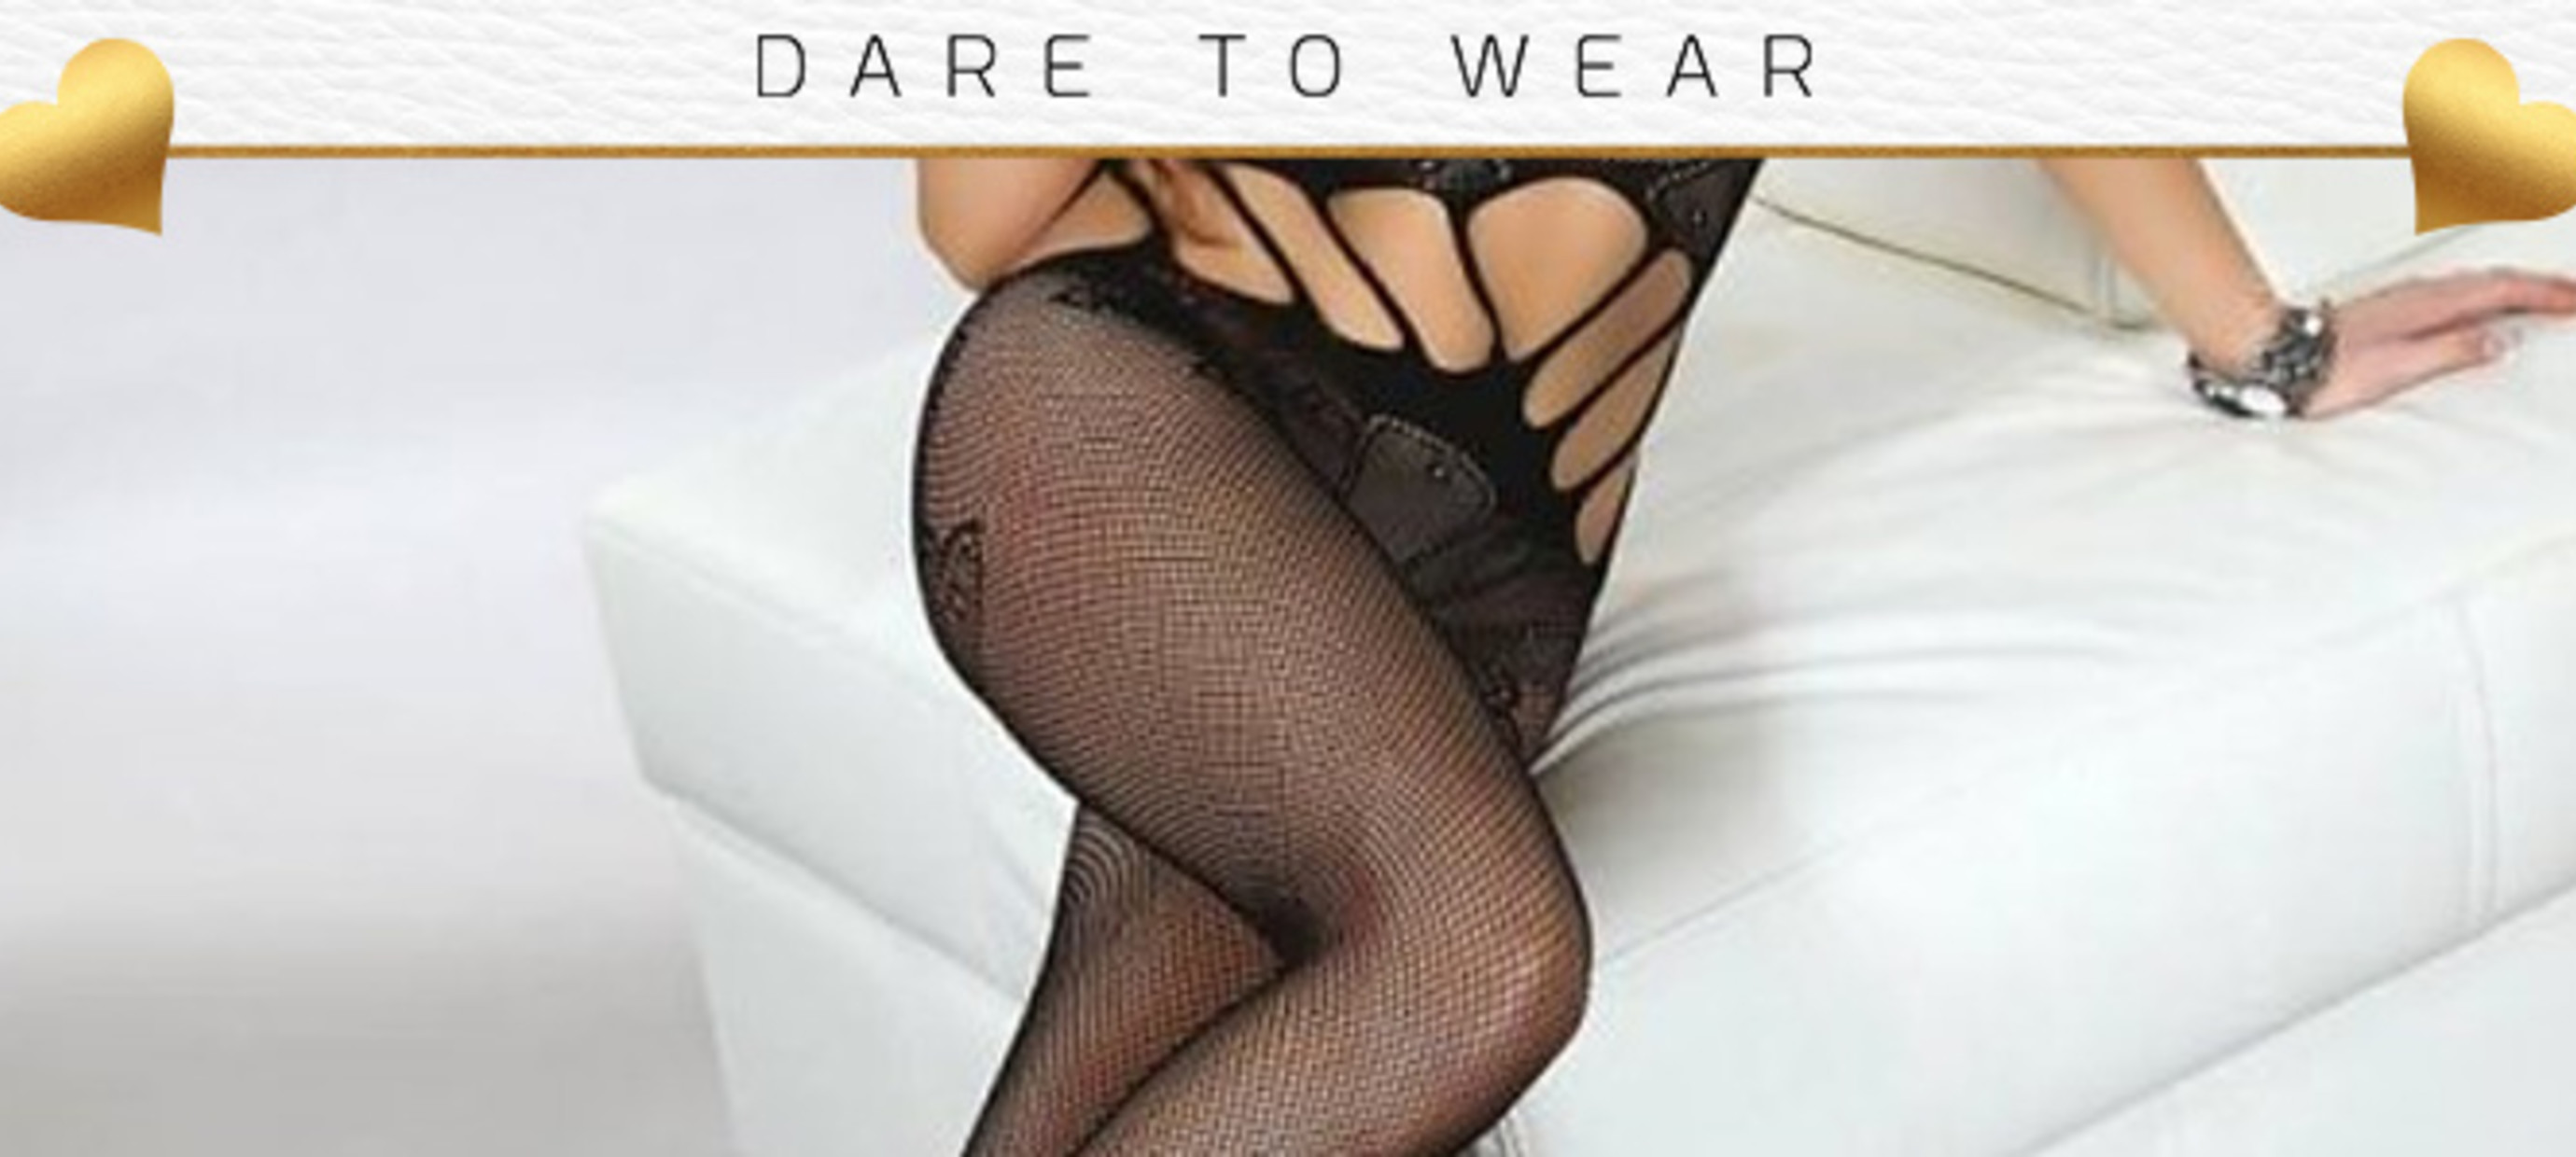 Bodystockings zijn trendy in de winter!